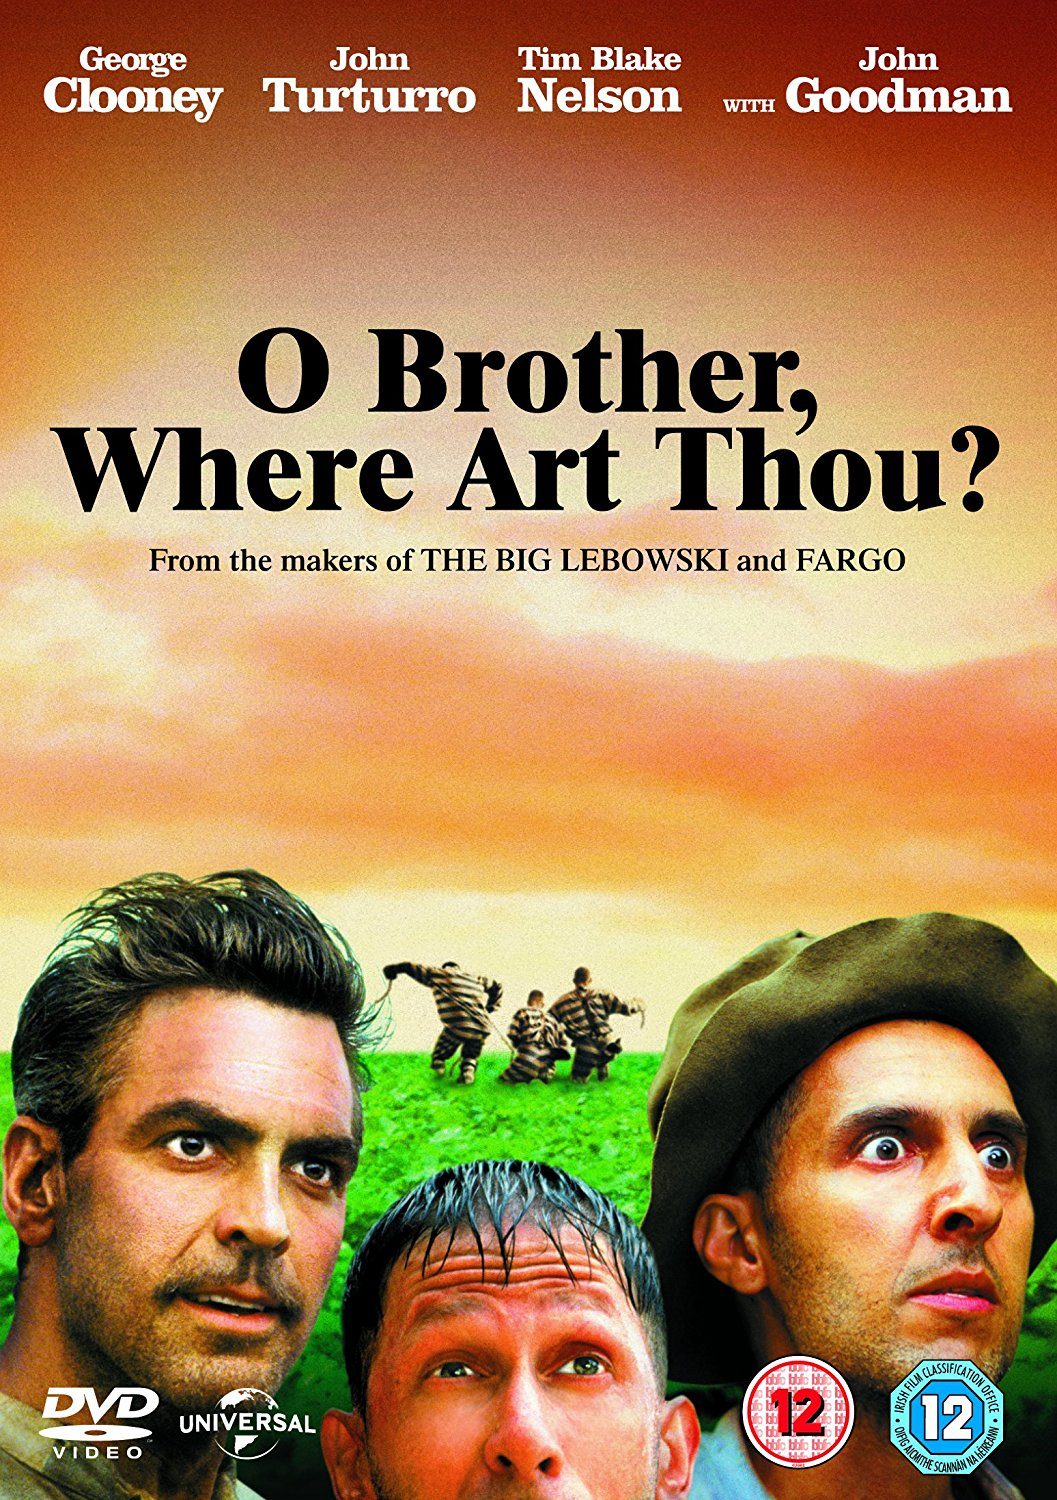 008 O Brother Where Art Thou Essay Huber Striking And The Odyssey Comparison Vs Compared To Full